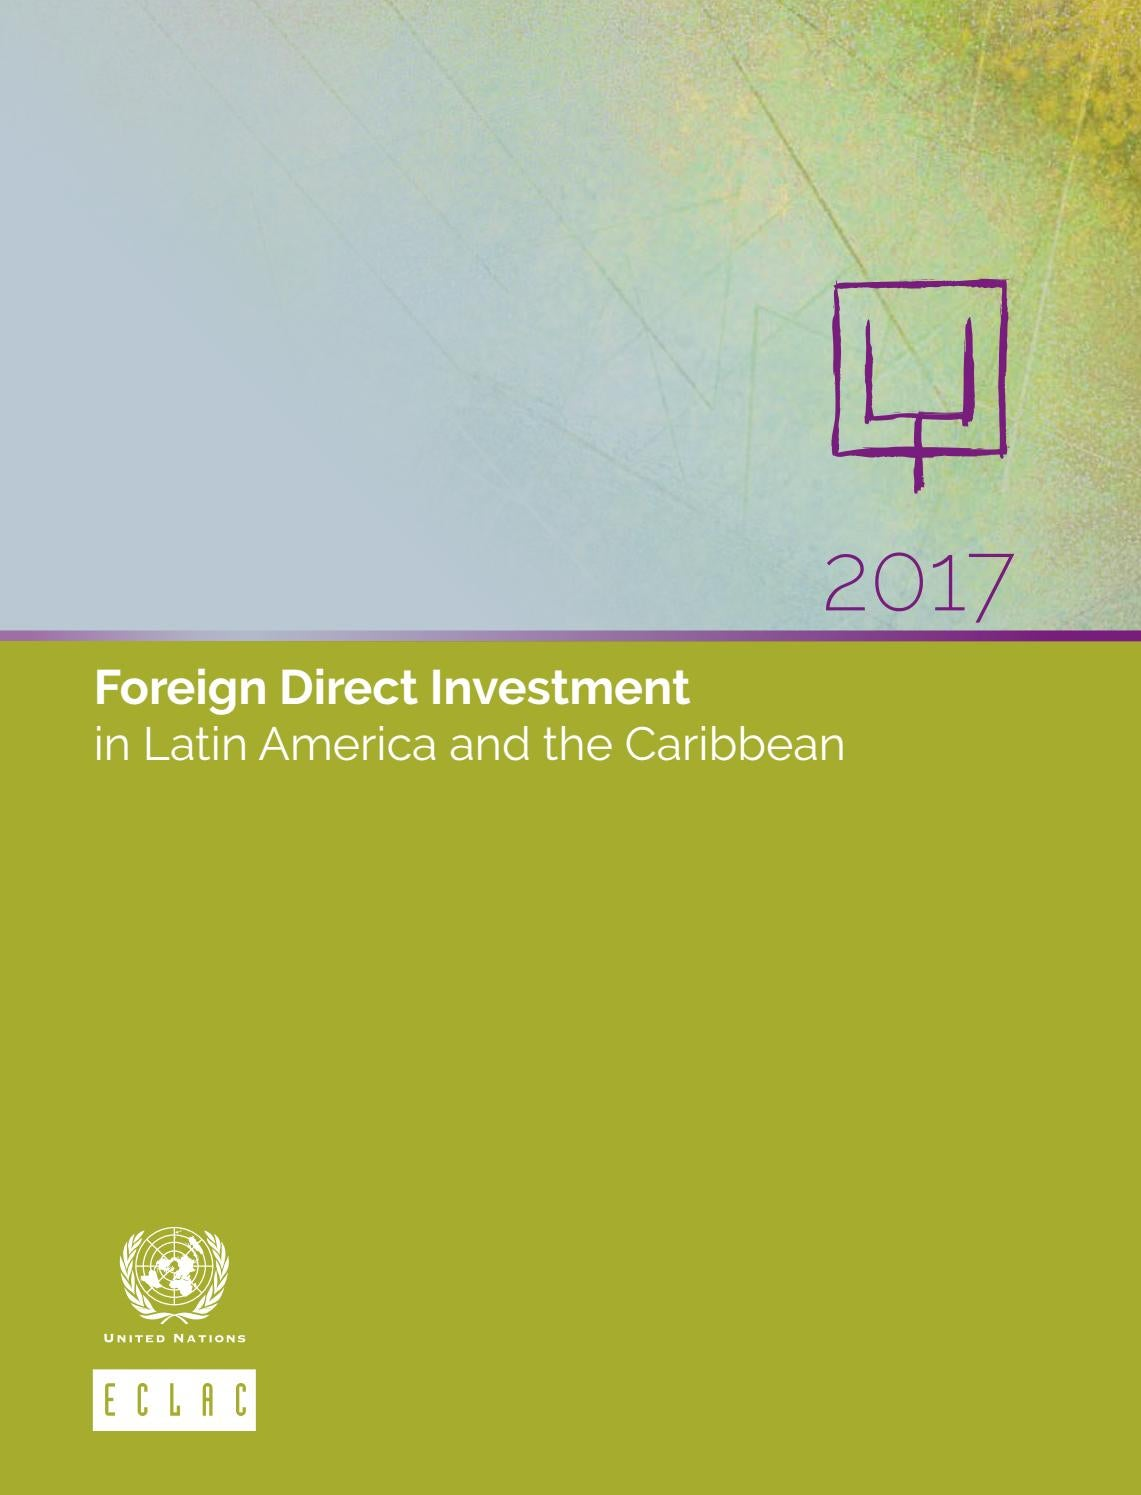 Unctad incentives and foreign direct investment 1996 dodge nasdaq 100 analysis